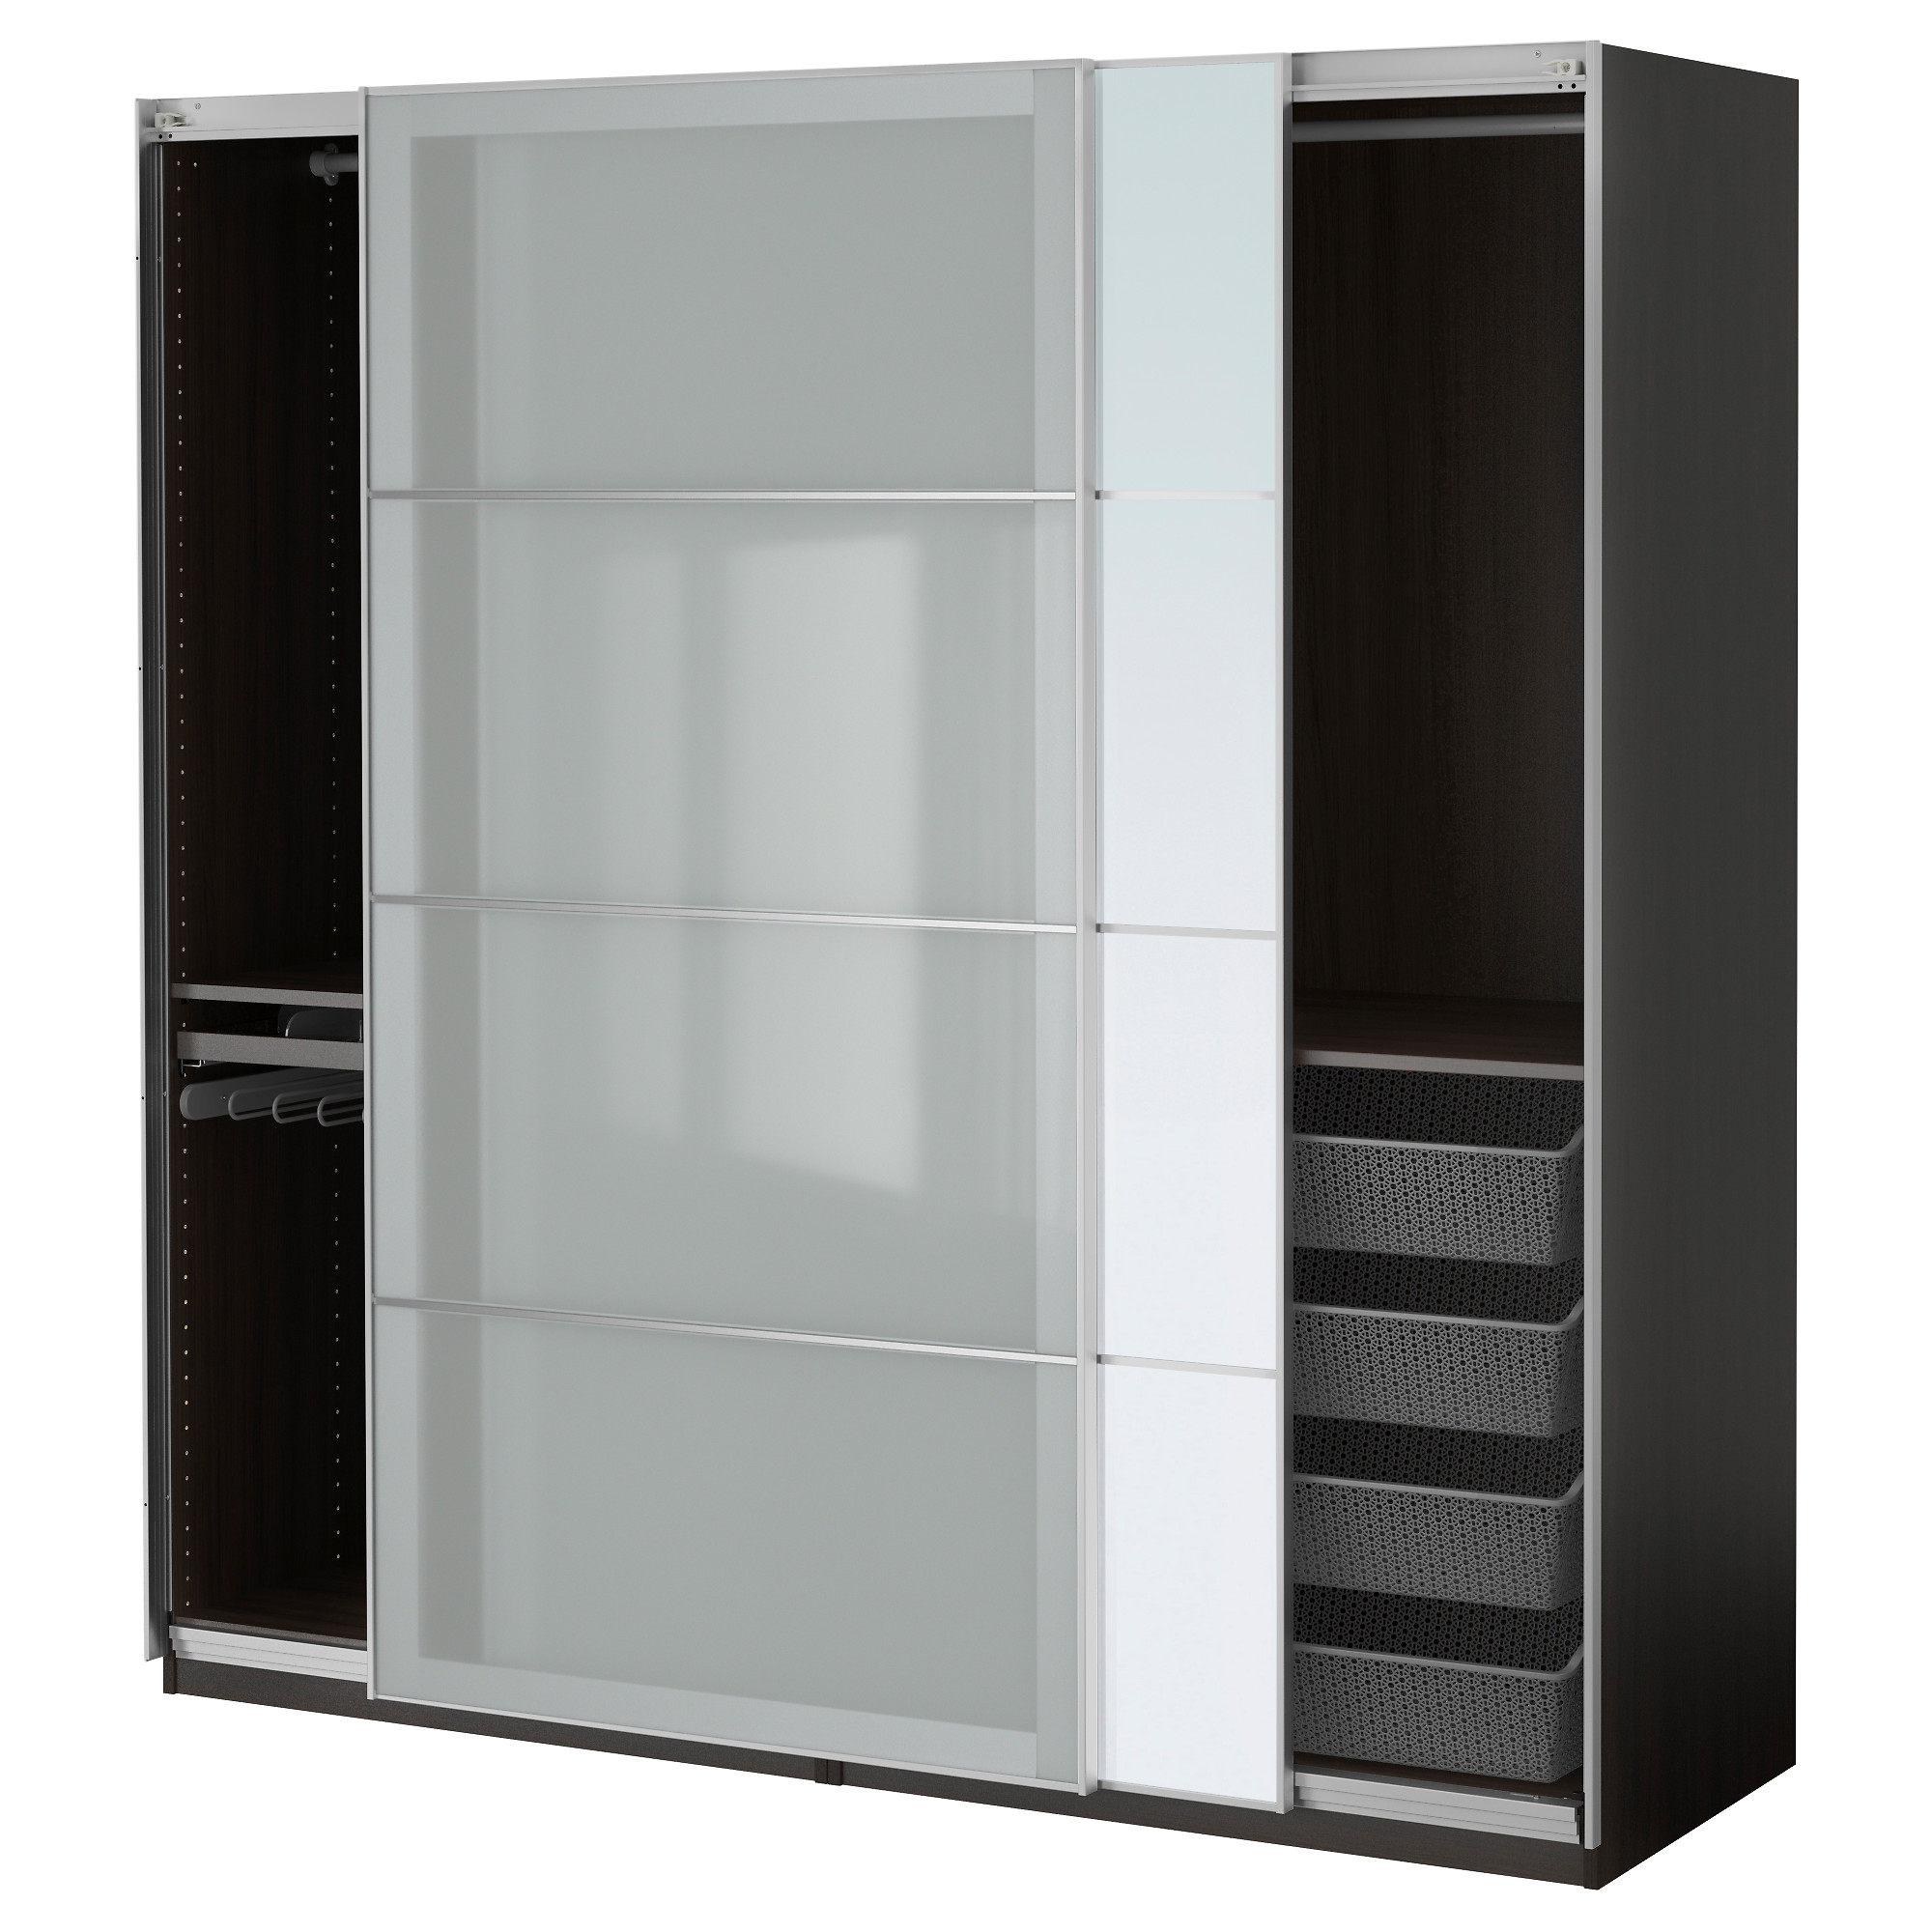 wardrobe ideas uk closet systems system ikea walk cabinets cabinet in storage clothes organizer